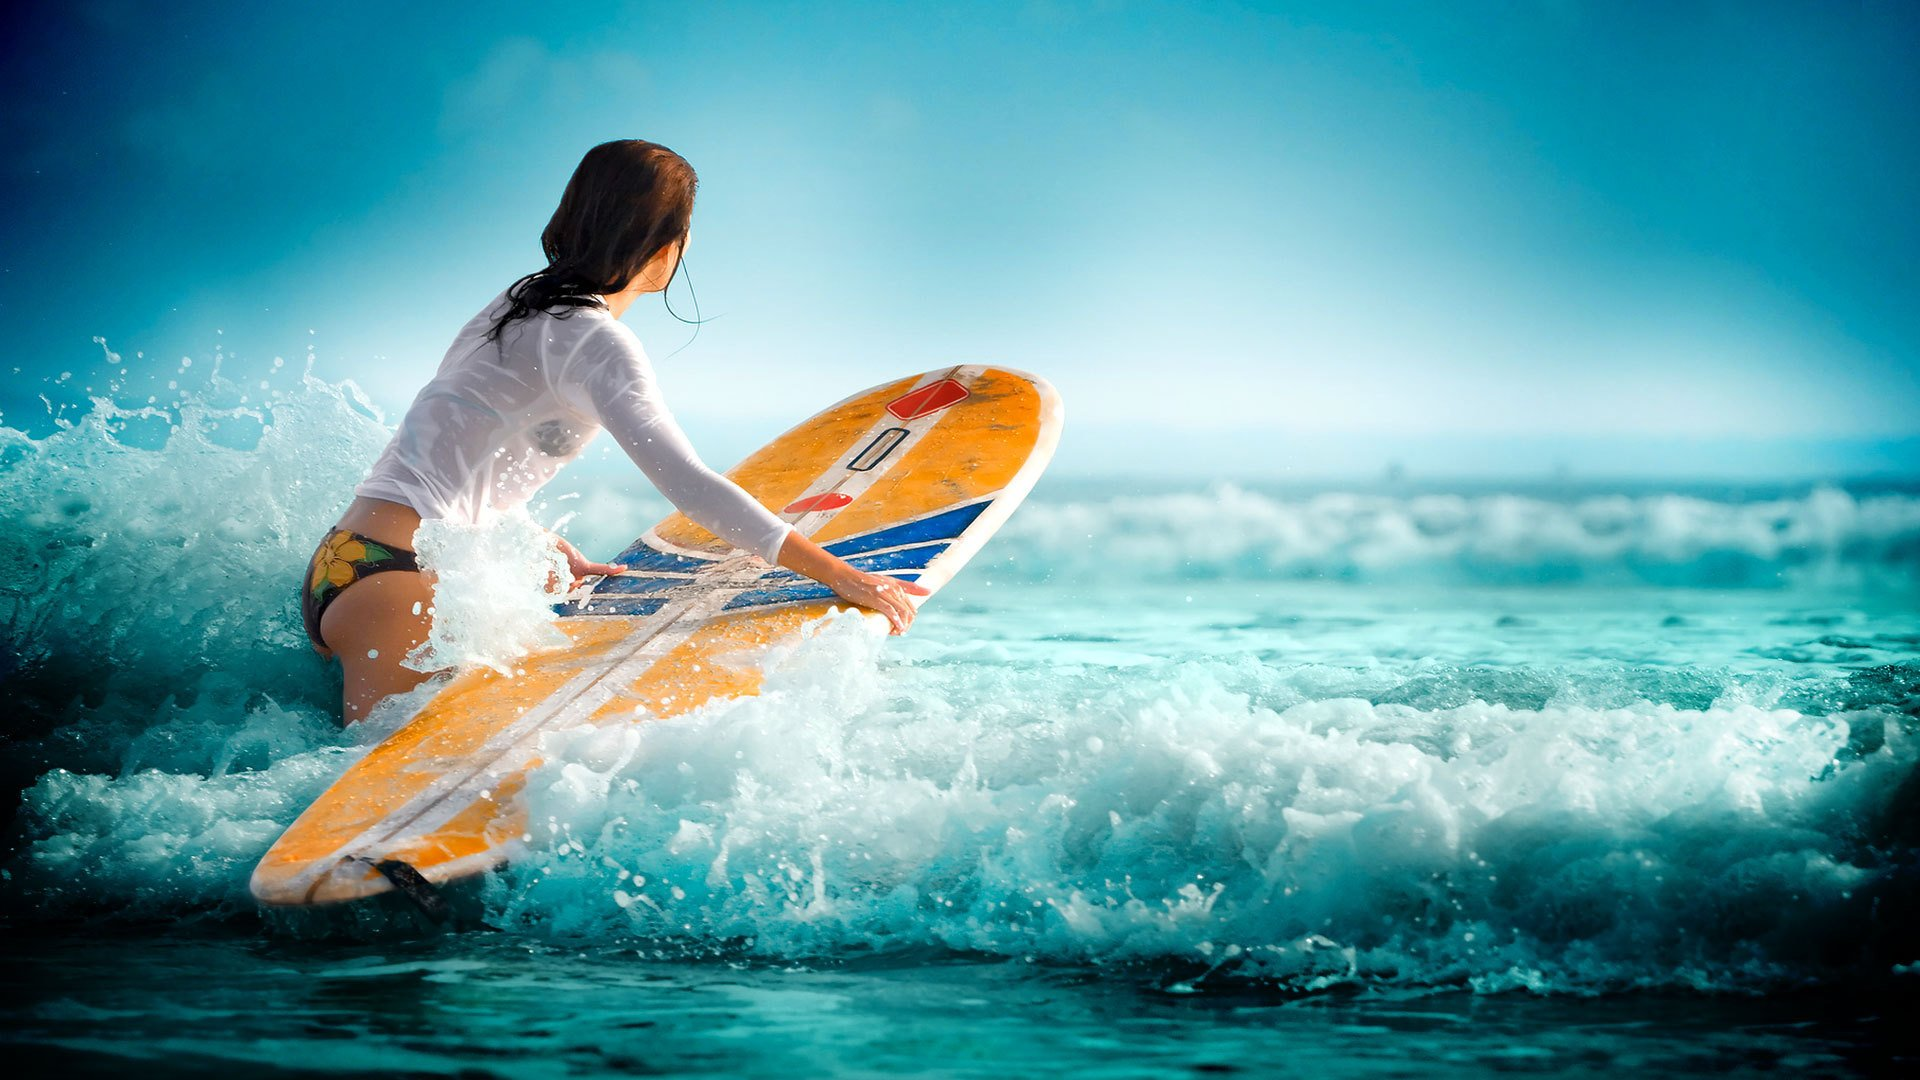 Surfing waves water sea girl wallpaper 1920x1080 117562 1920x1080